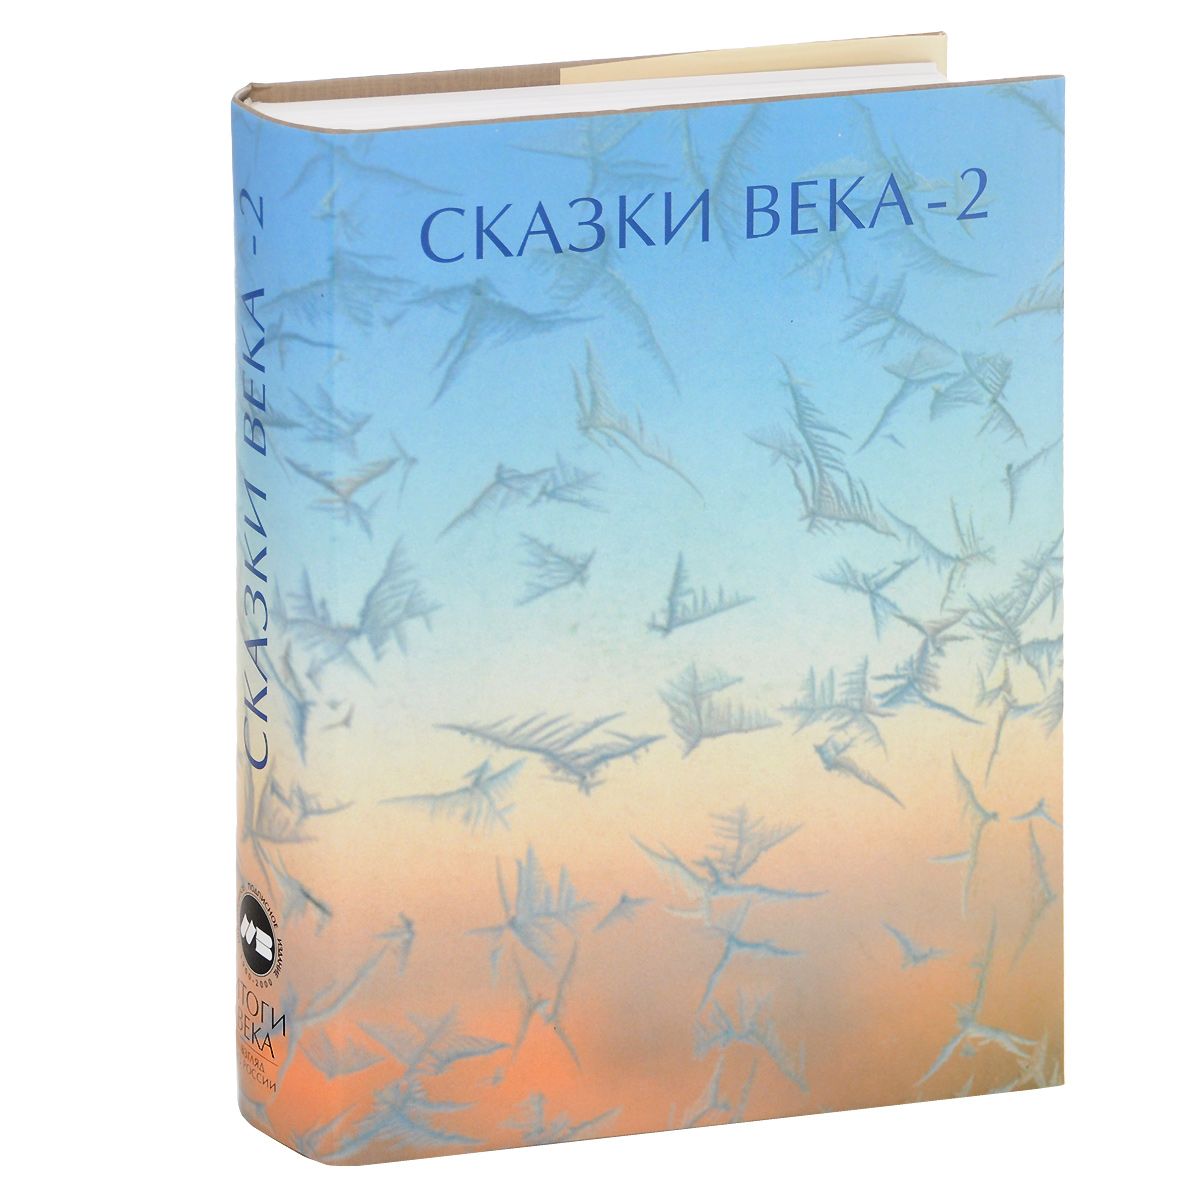 Сказки века - 2